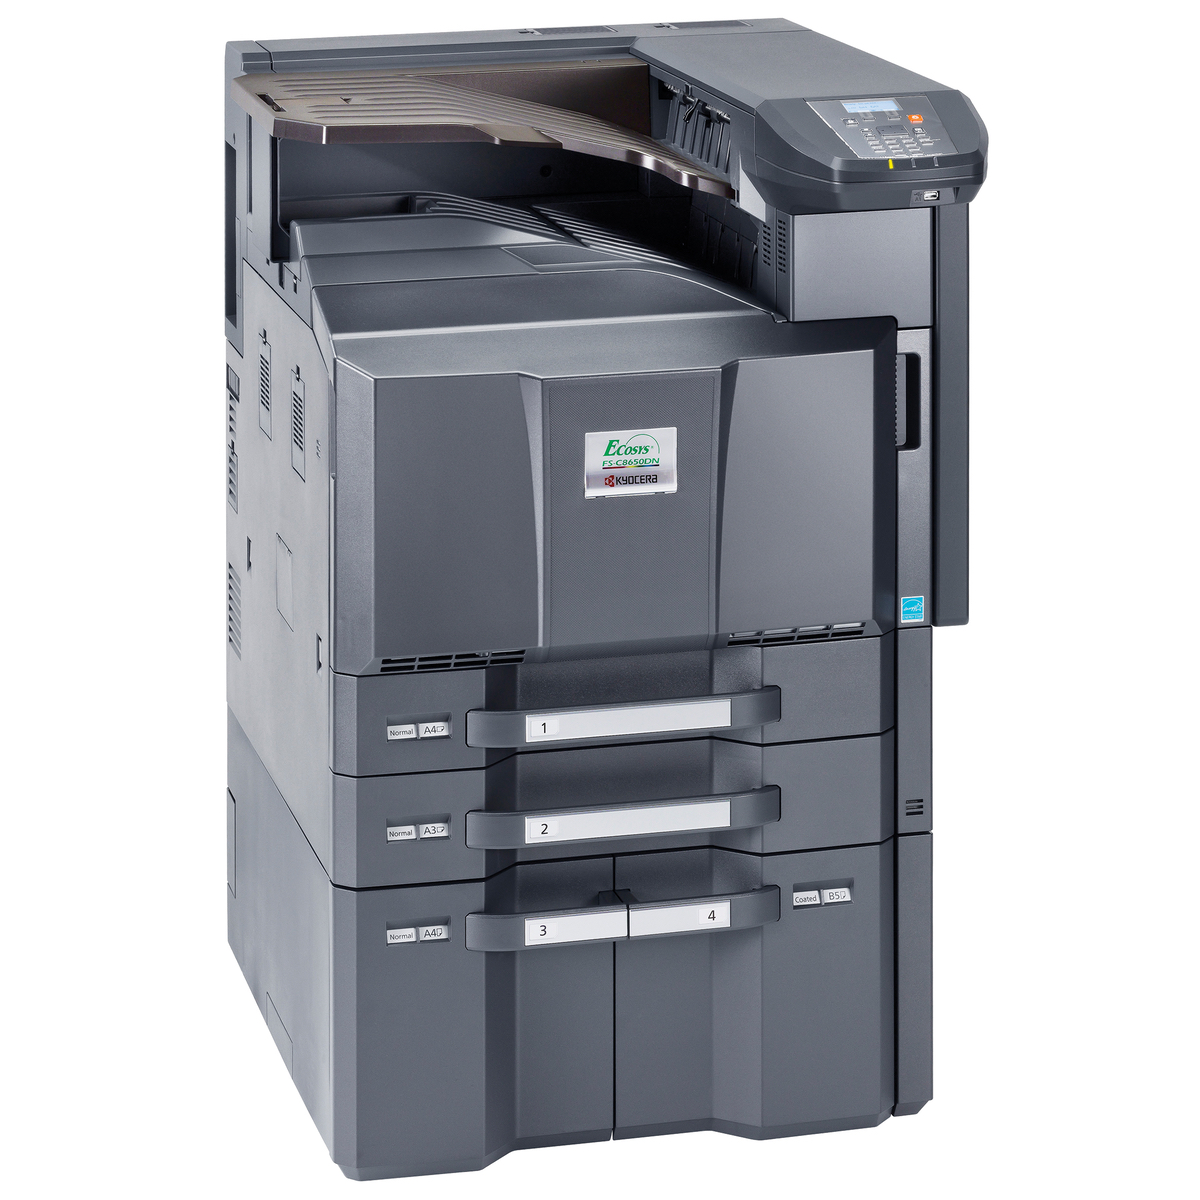 Kyocera Printers:  The Kyocera FS-C8650DN Printer